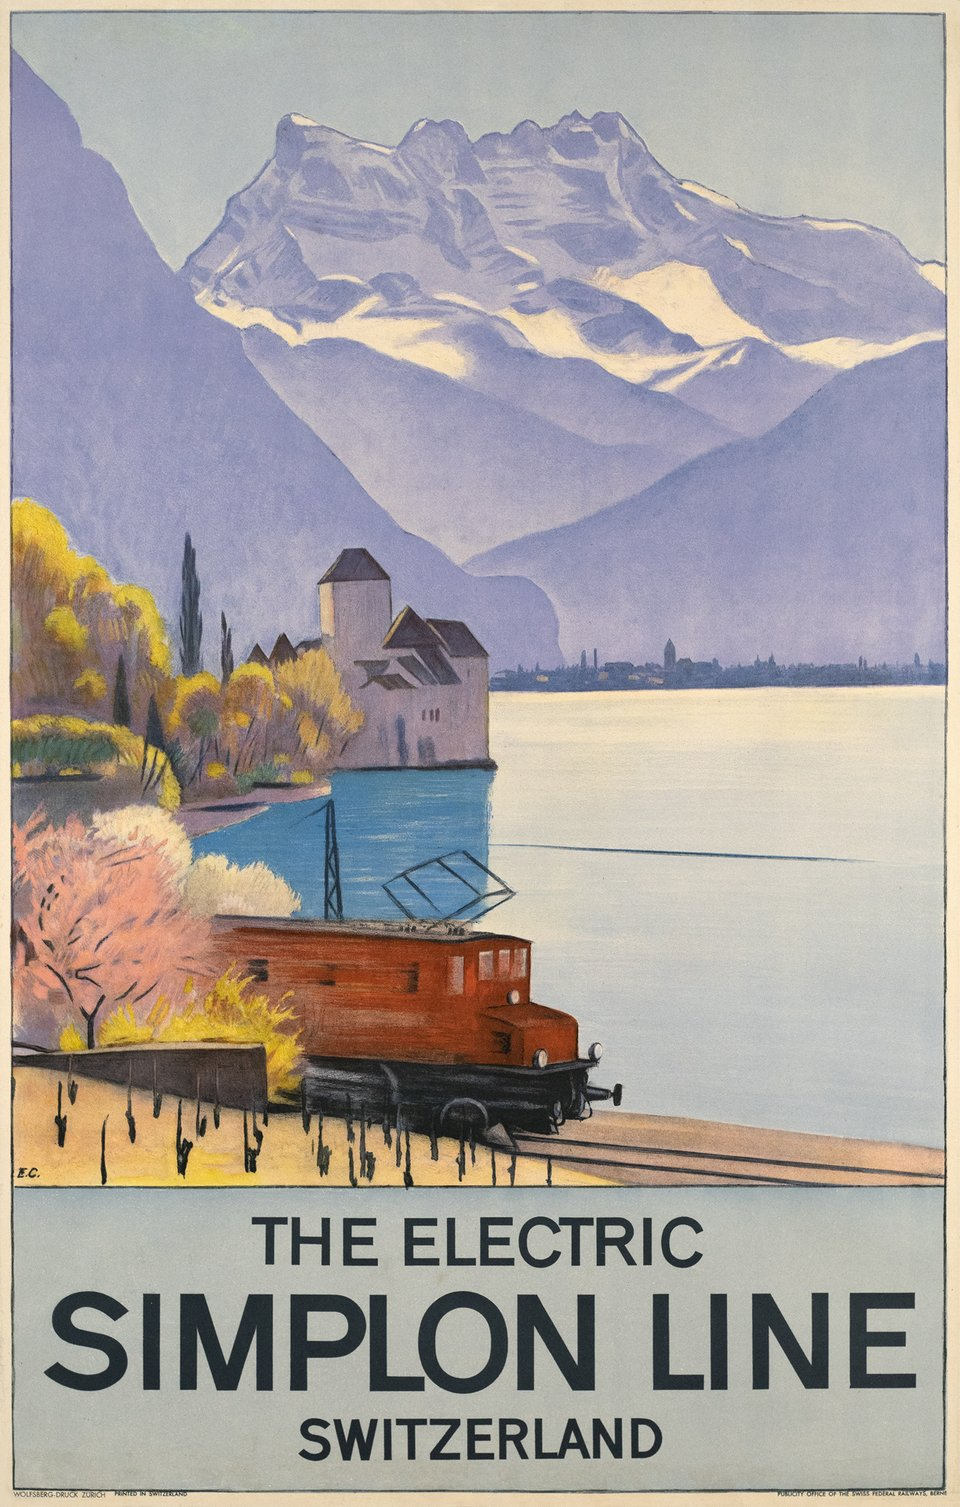 The Electric Simplon Line, Switzerland – Affiche ancienne – Emil CARDINAUX – 1928